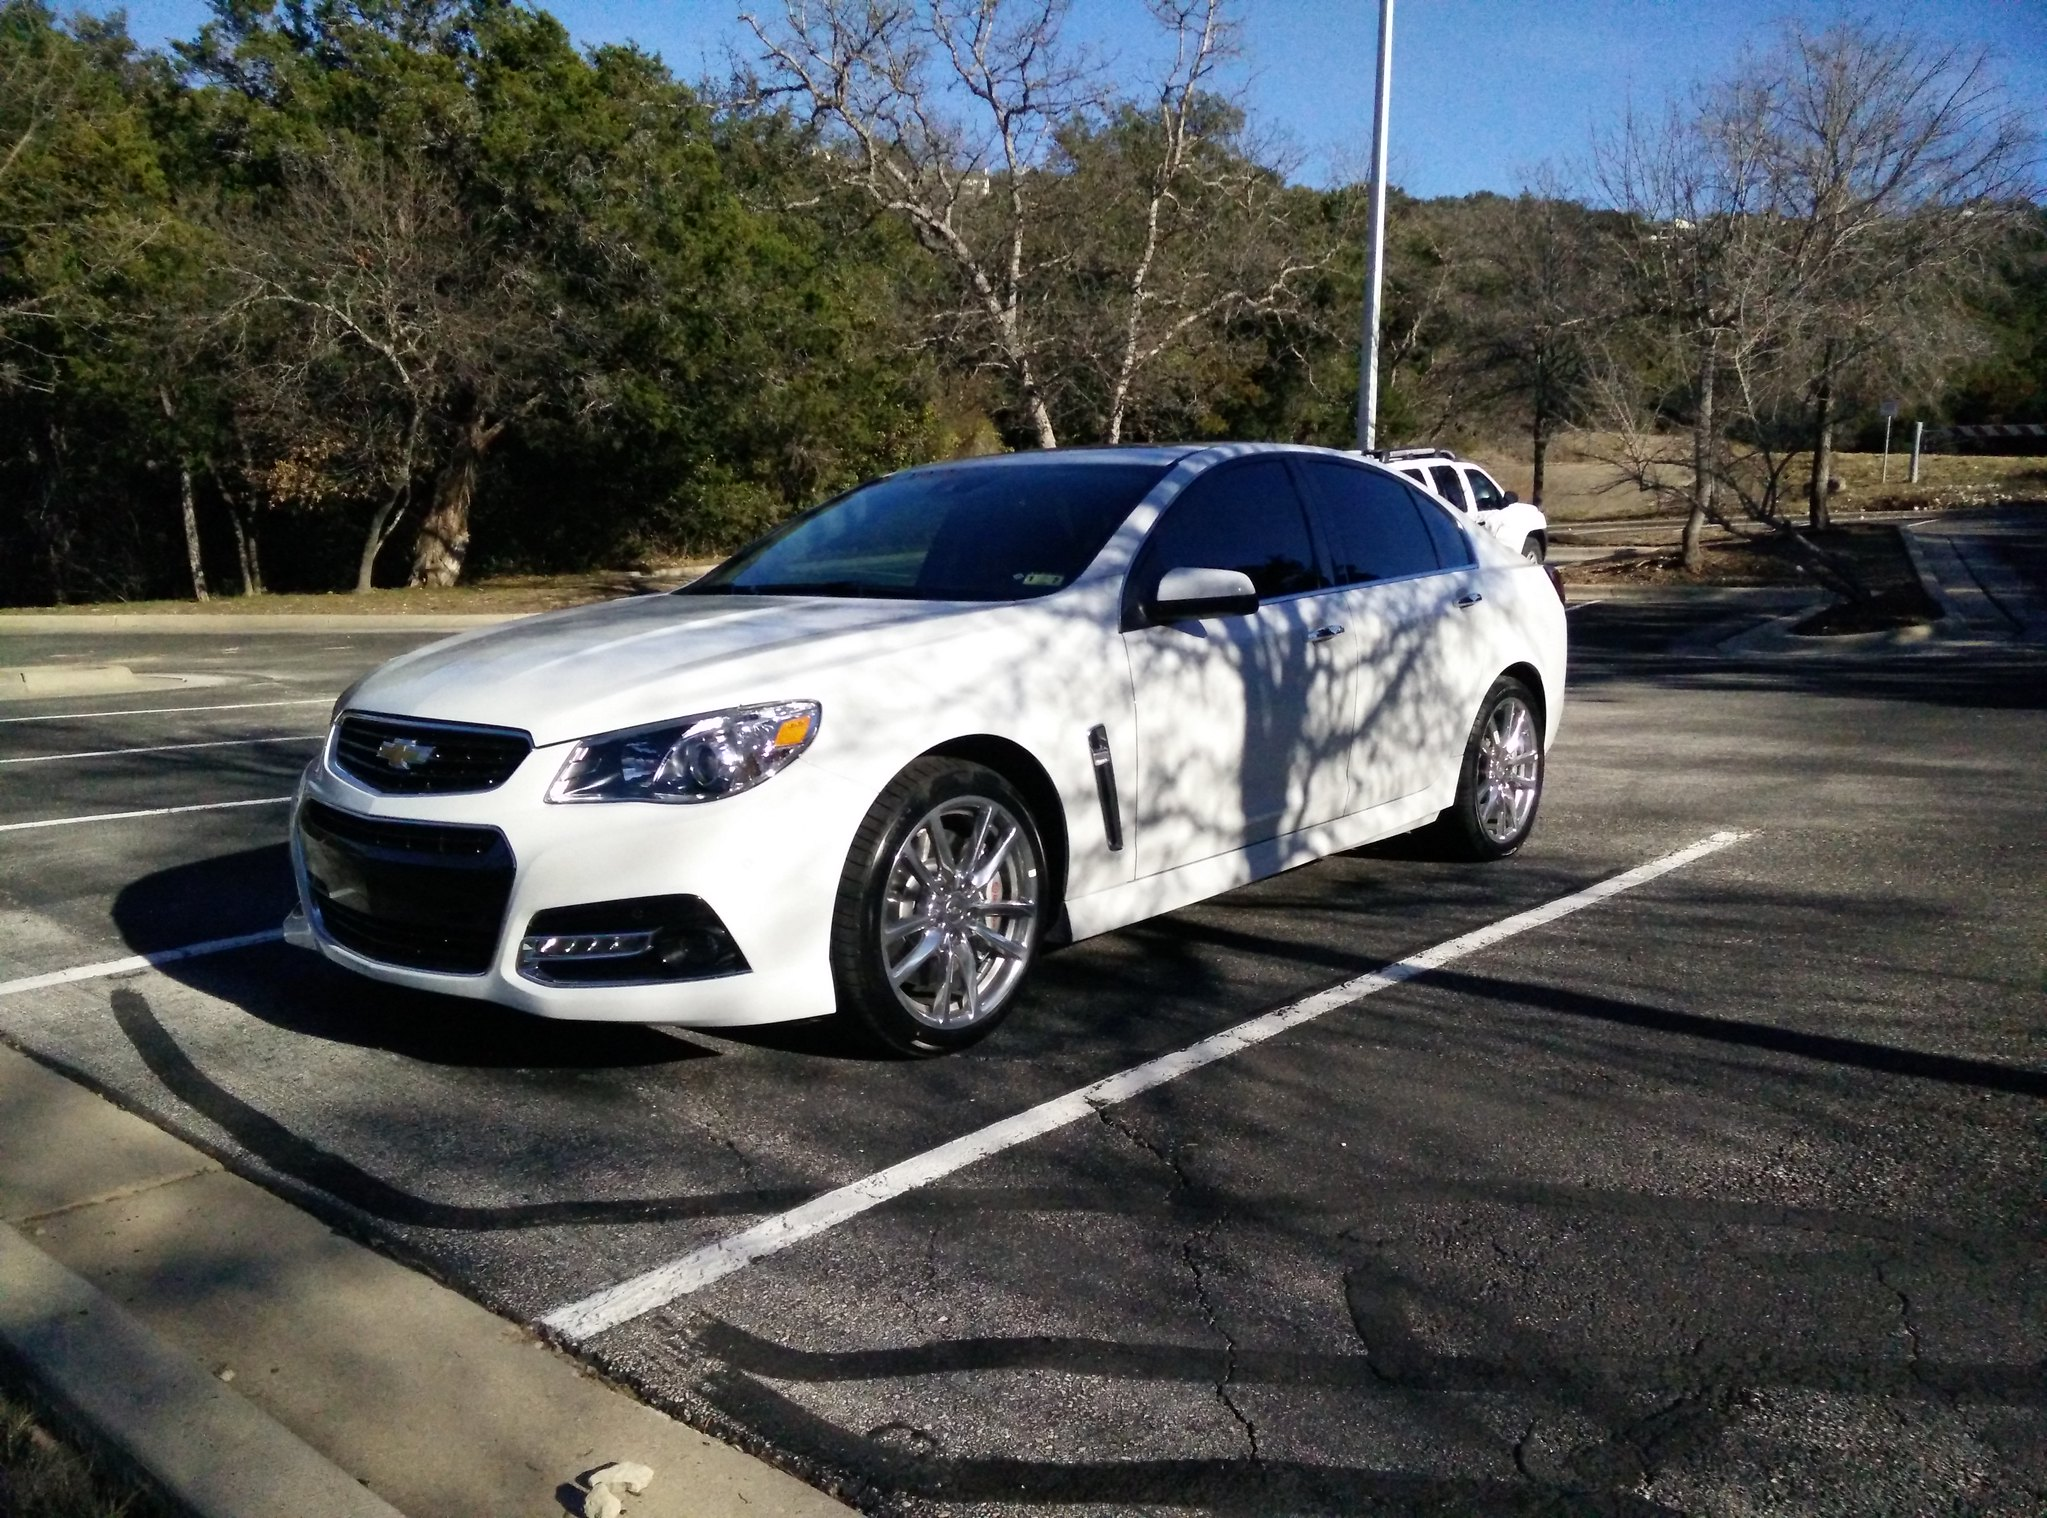 Capitol Chevrolet Austin Tx >> Heron White Chevrolet SS Picture Thread - Page 5 - Chevy SS Forum